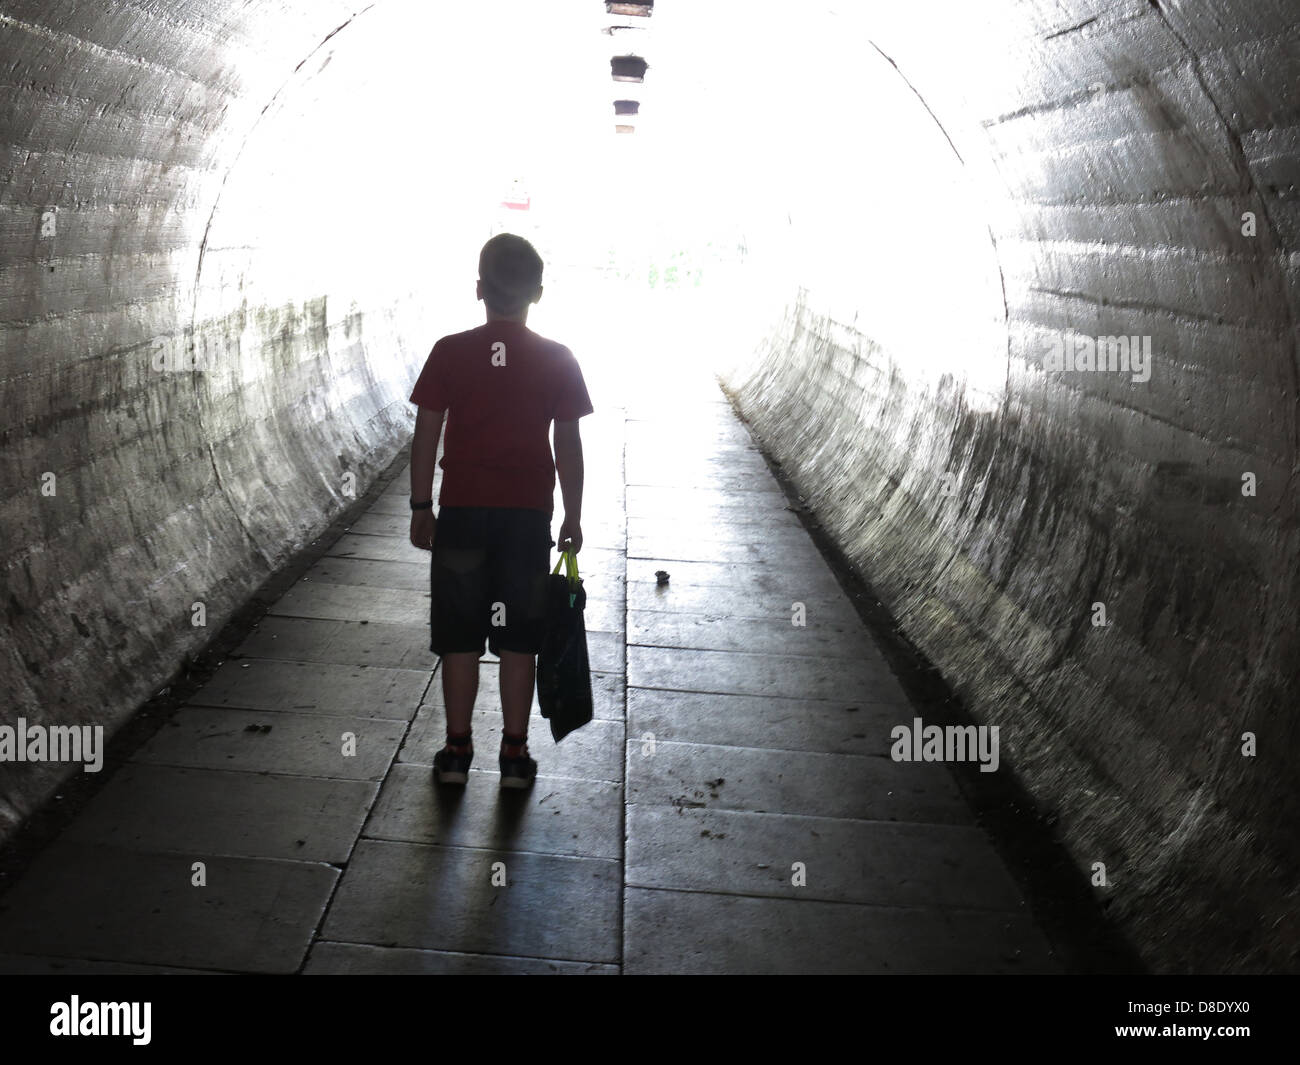 School child walking in a dark subway - Stock Image